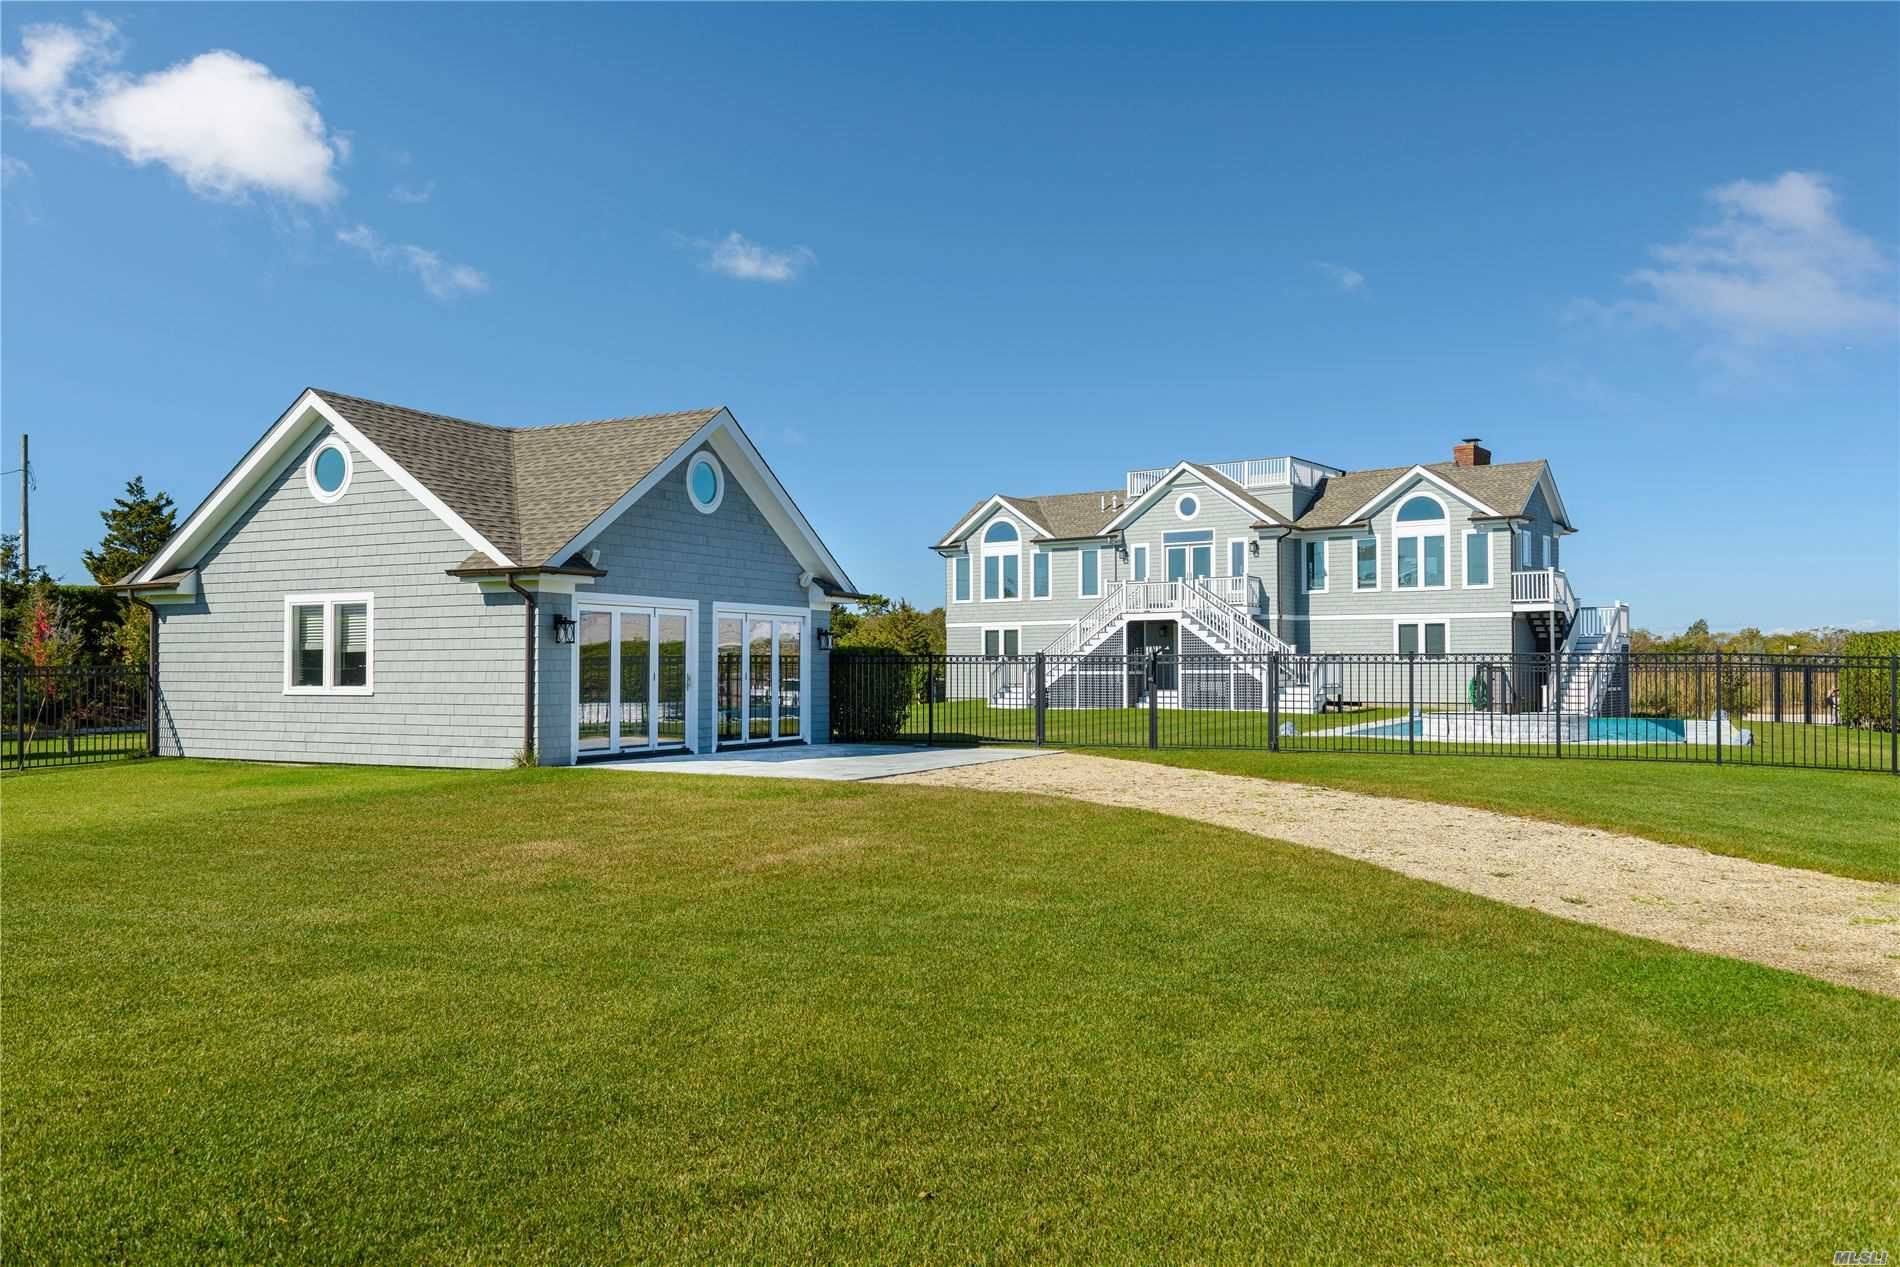 115 Dune Road, Quogue, NY 11959 - MLS#: 3179370